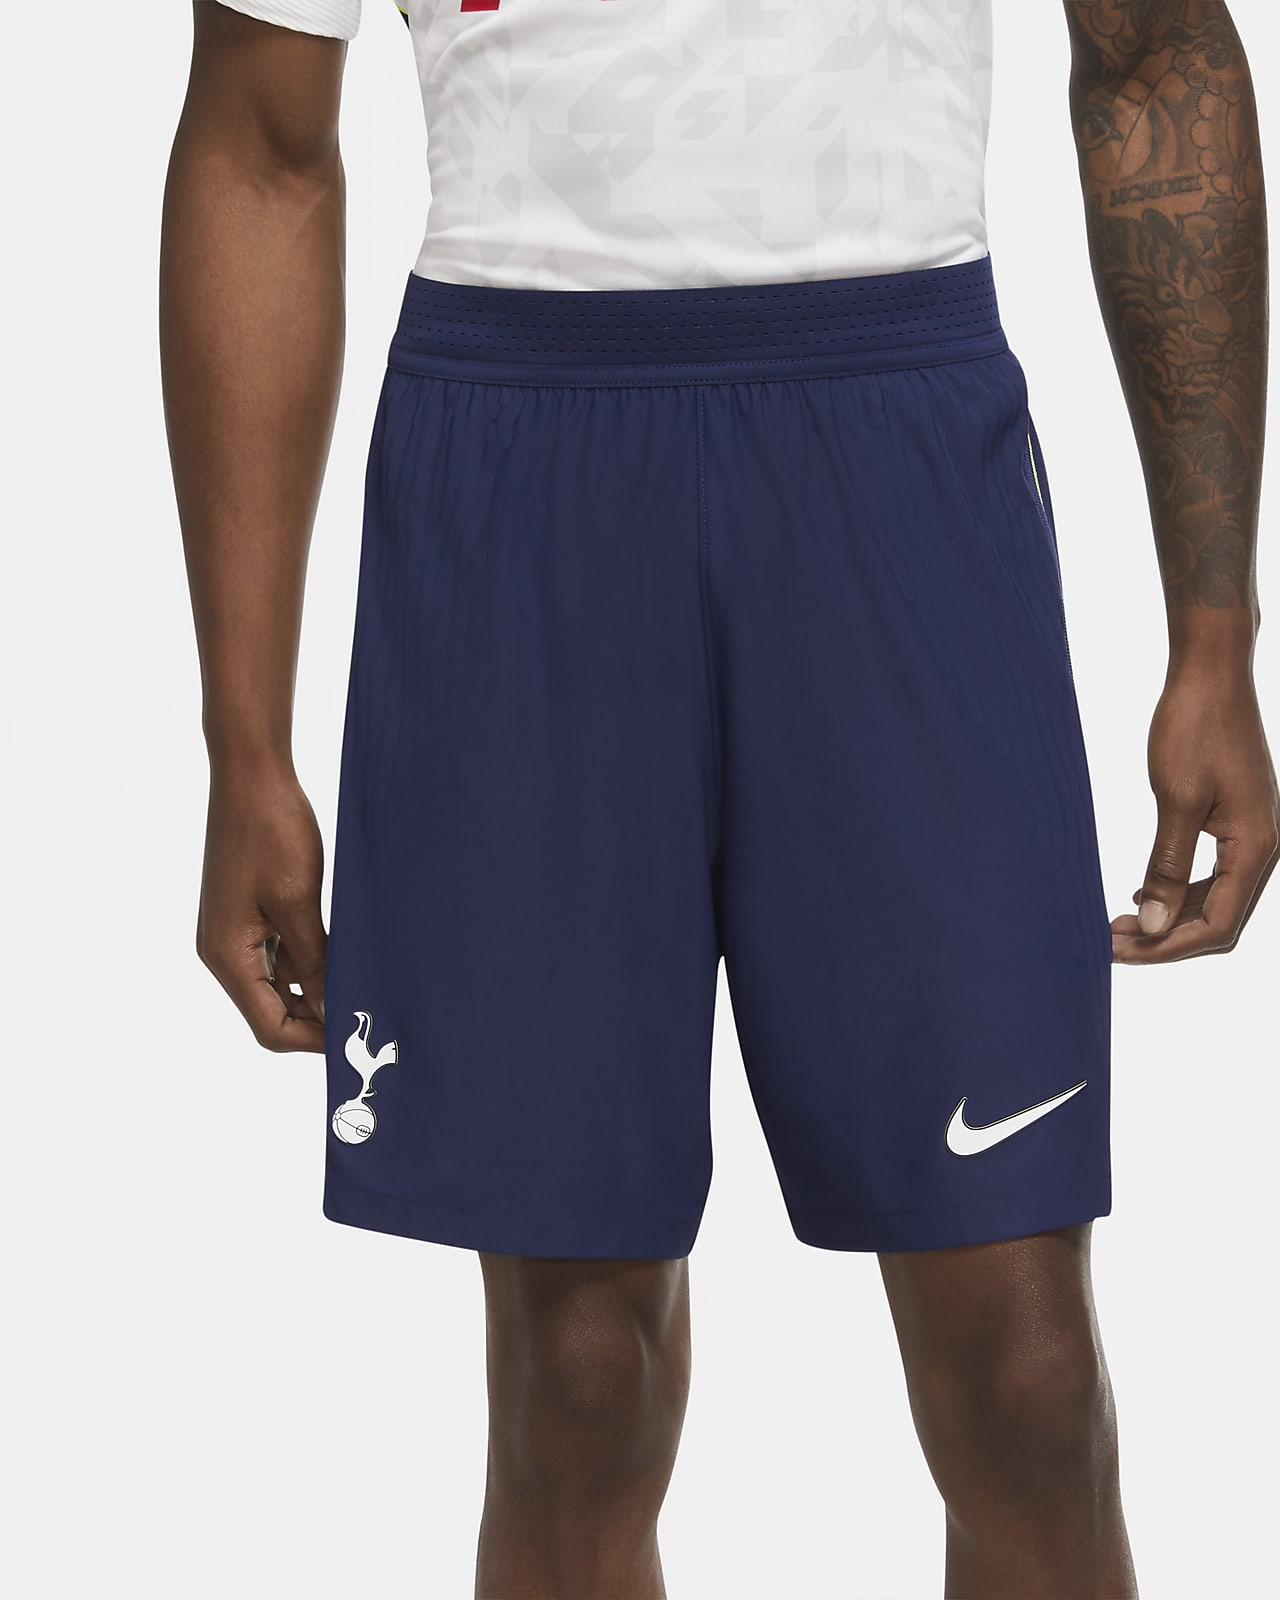 Tottenham Hotspur 2020/21 Vapor Match Home/Away Men's Football Shorts